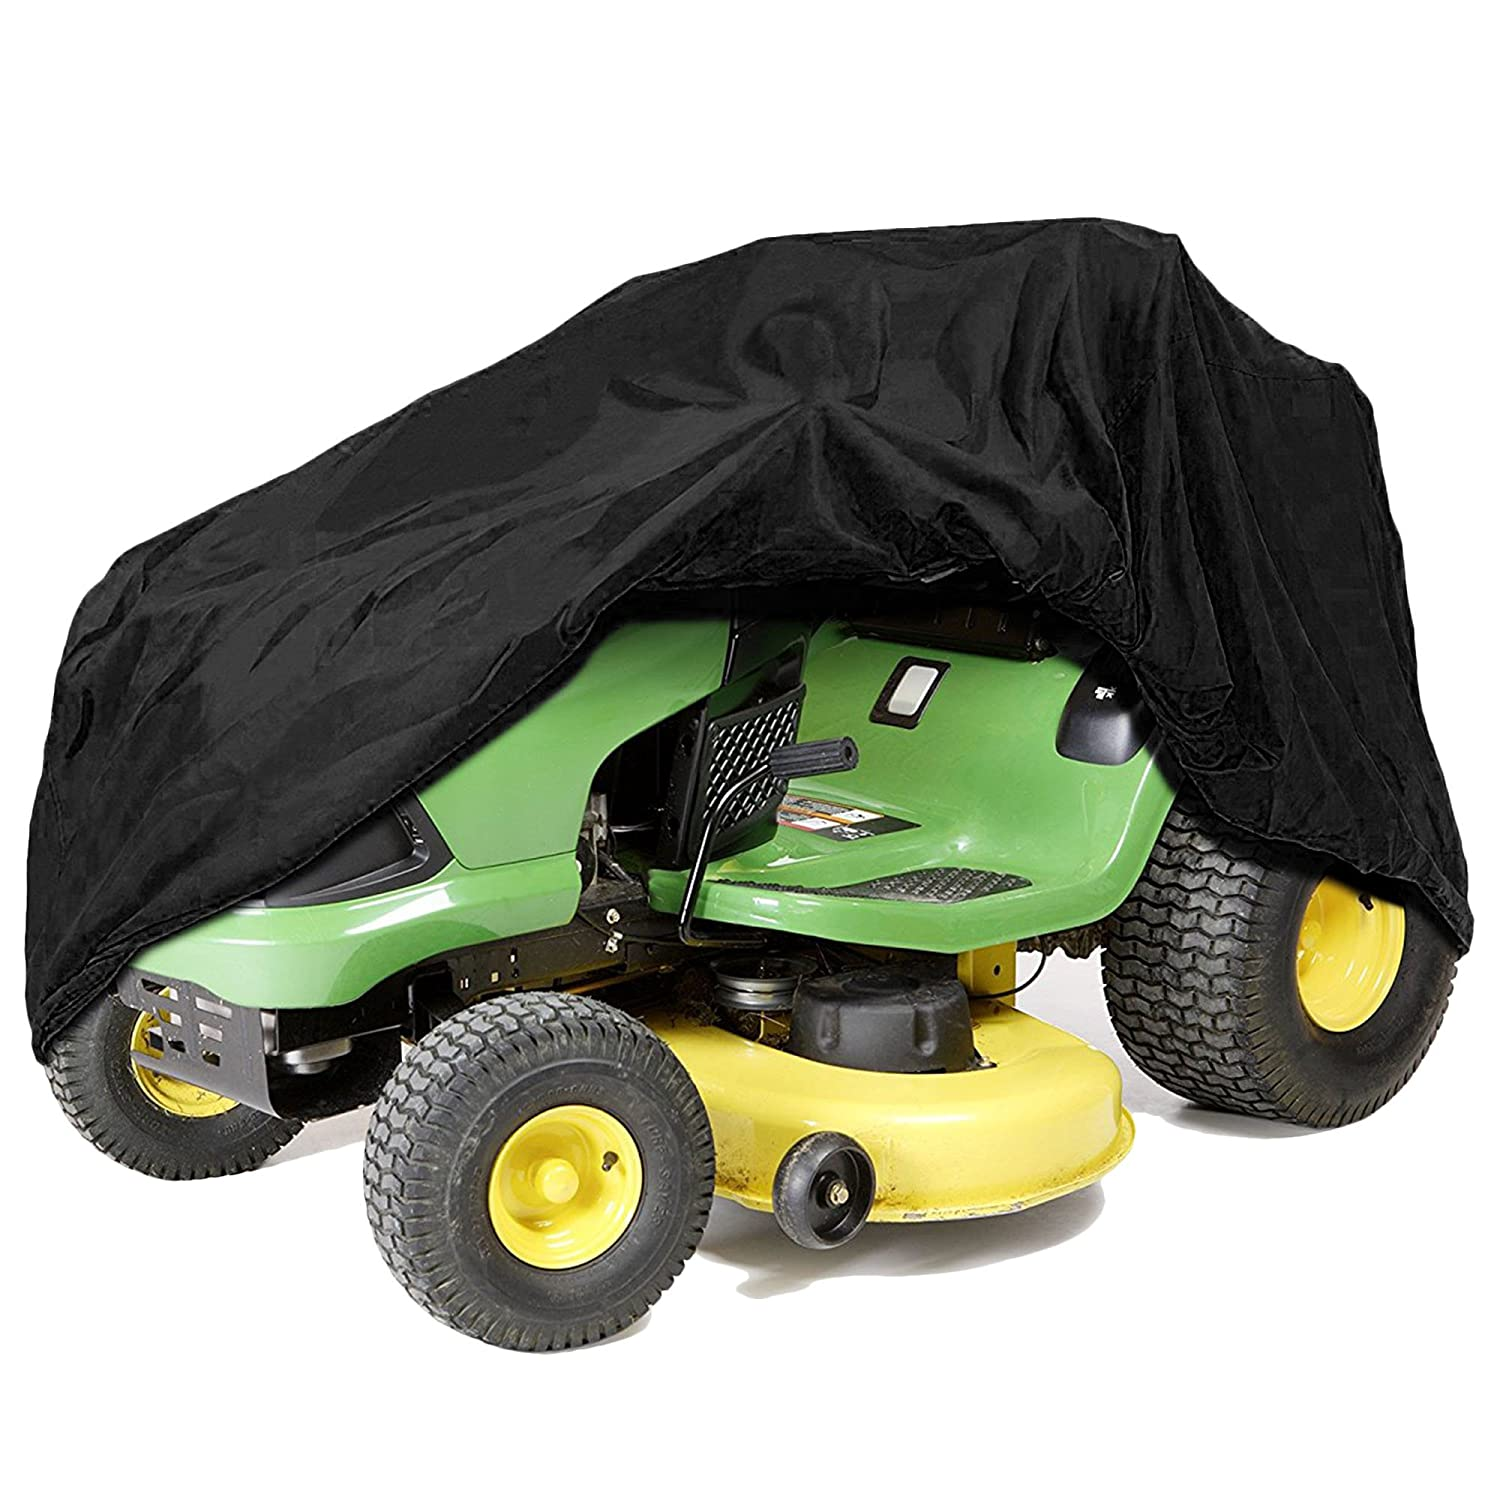 IZTOSS Riding Lawn Mower Tractor Cover Fits Decks up to 54 - Black - Water, Mildew, and UV Resistant Storage Cover